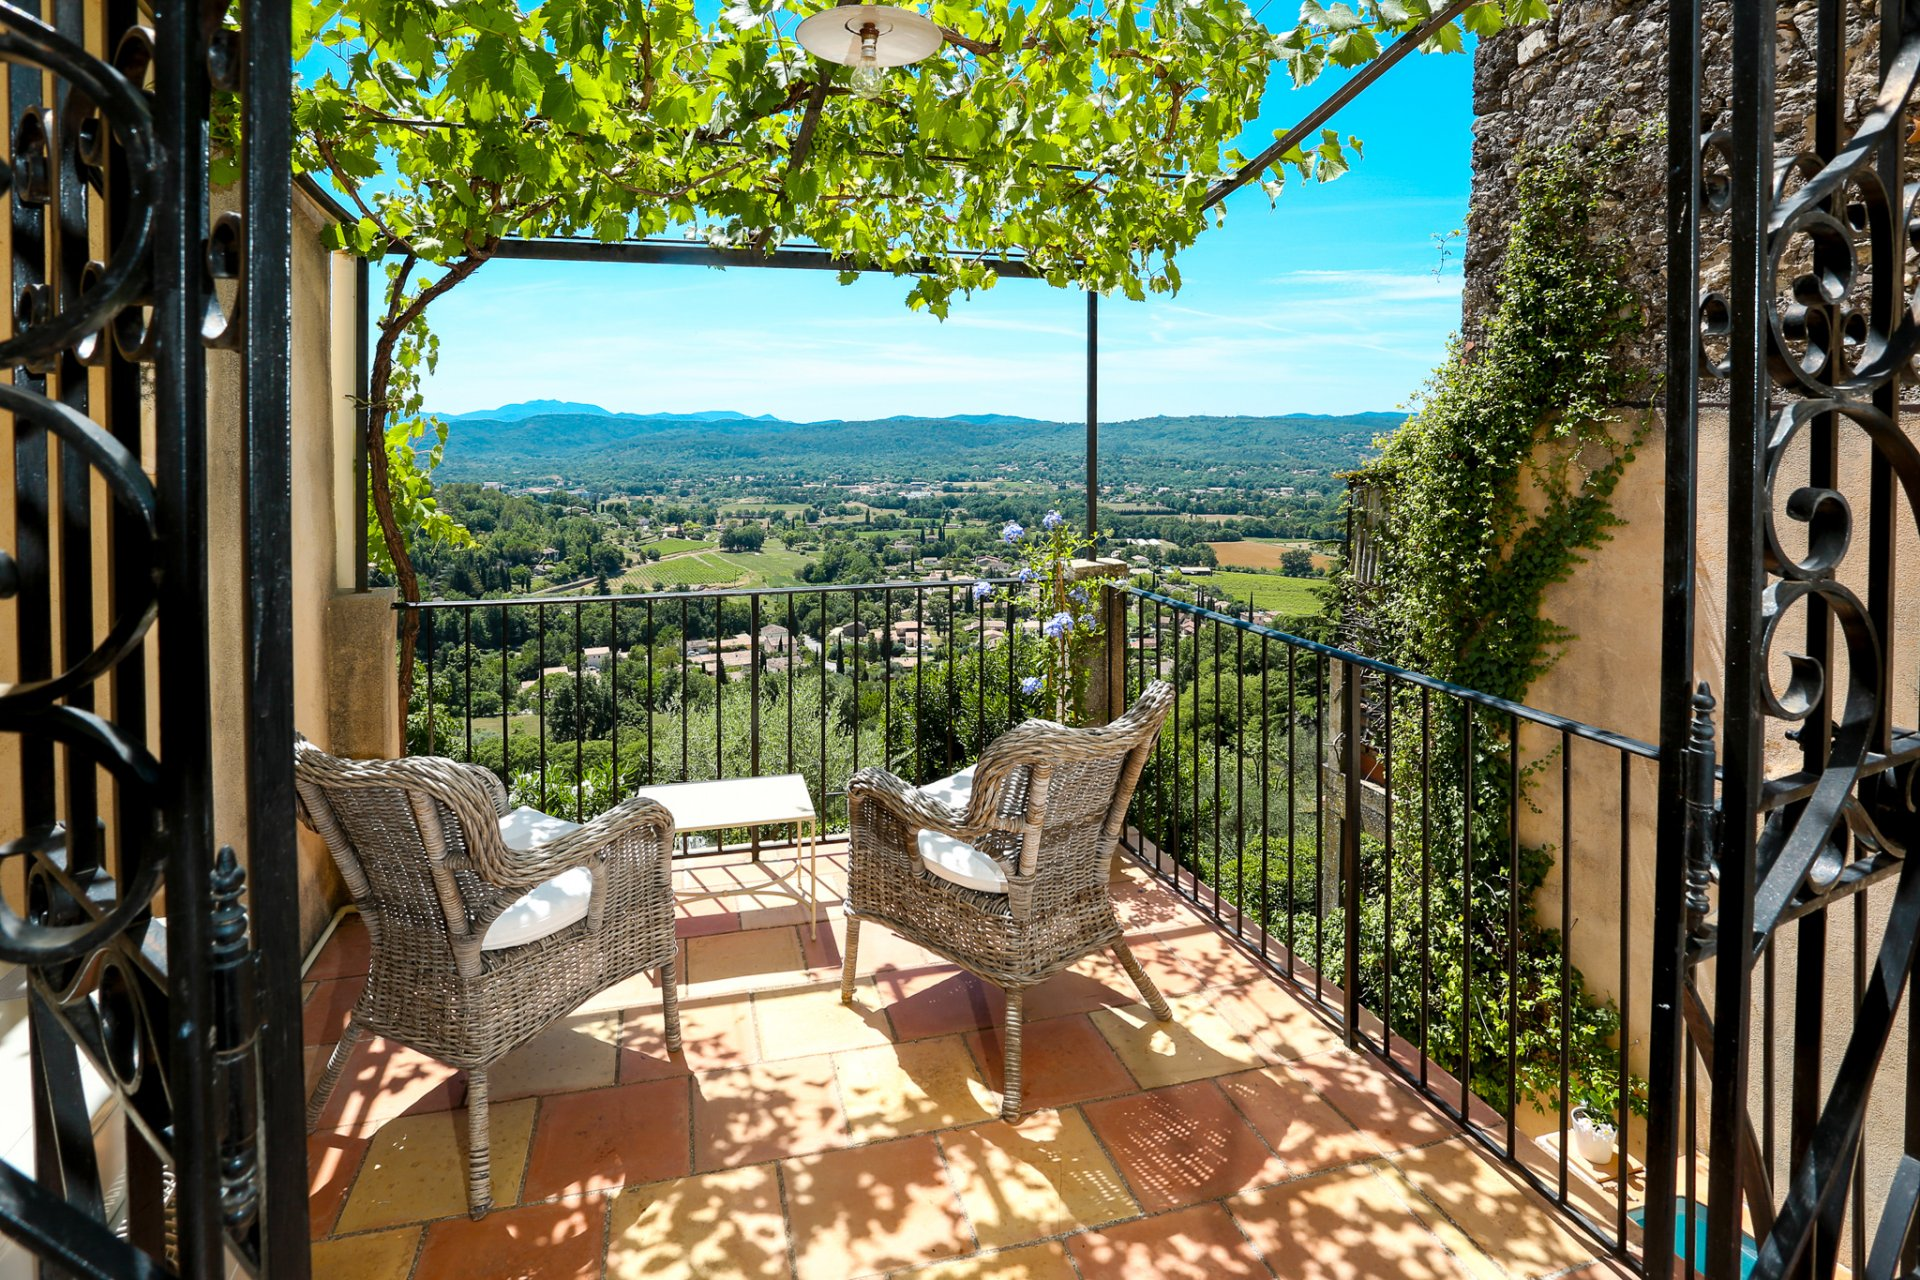 Callian – Village house with views, garden and pool